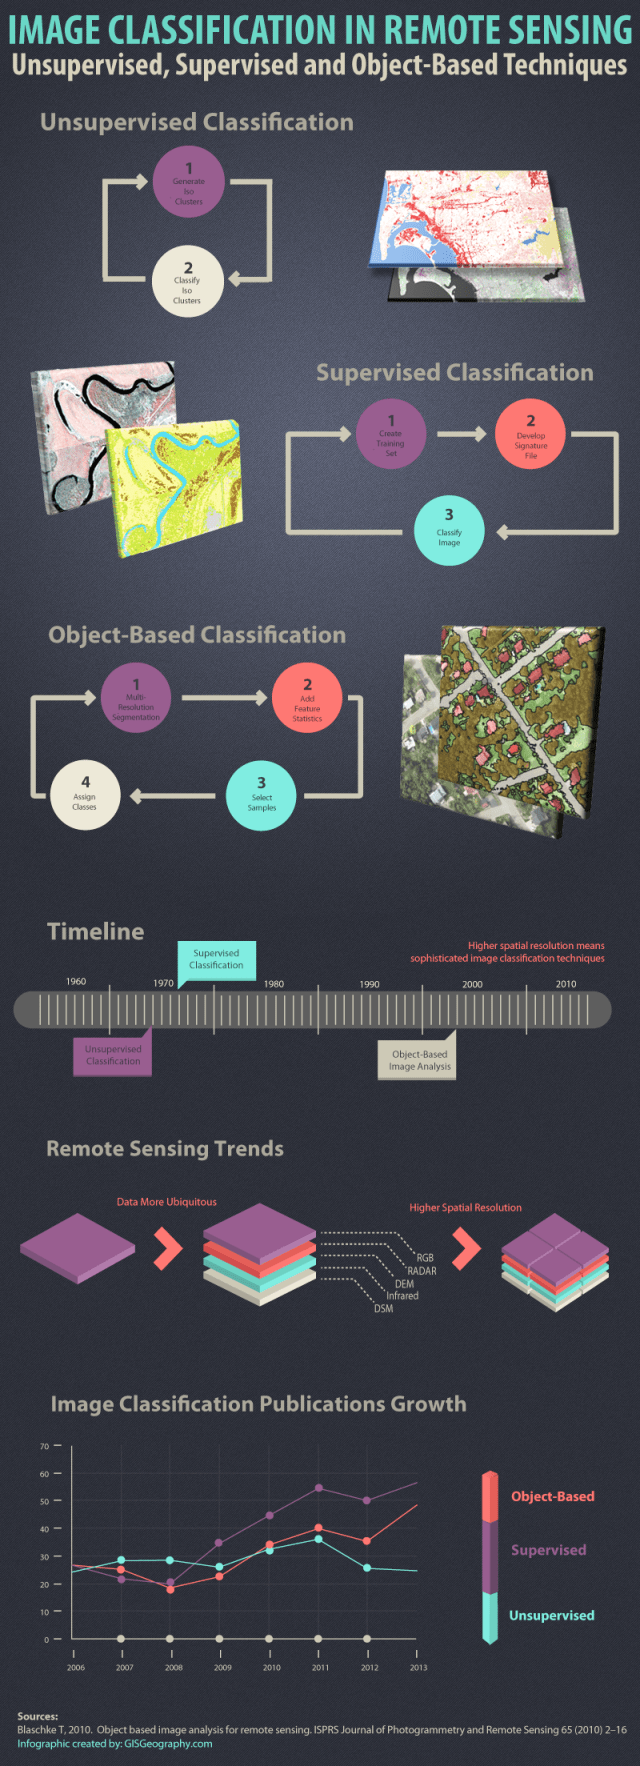 Image Classification in Remote Sensing